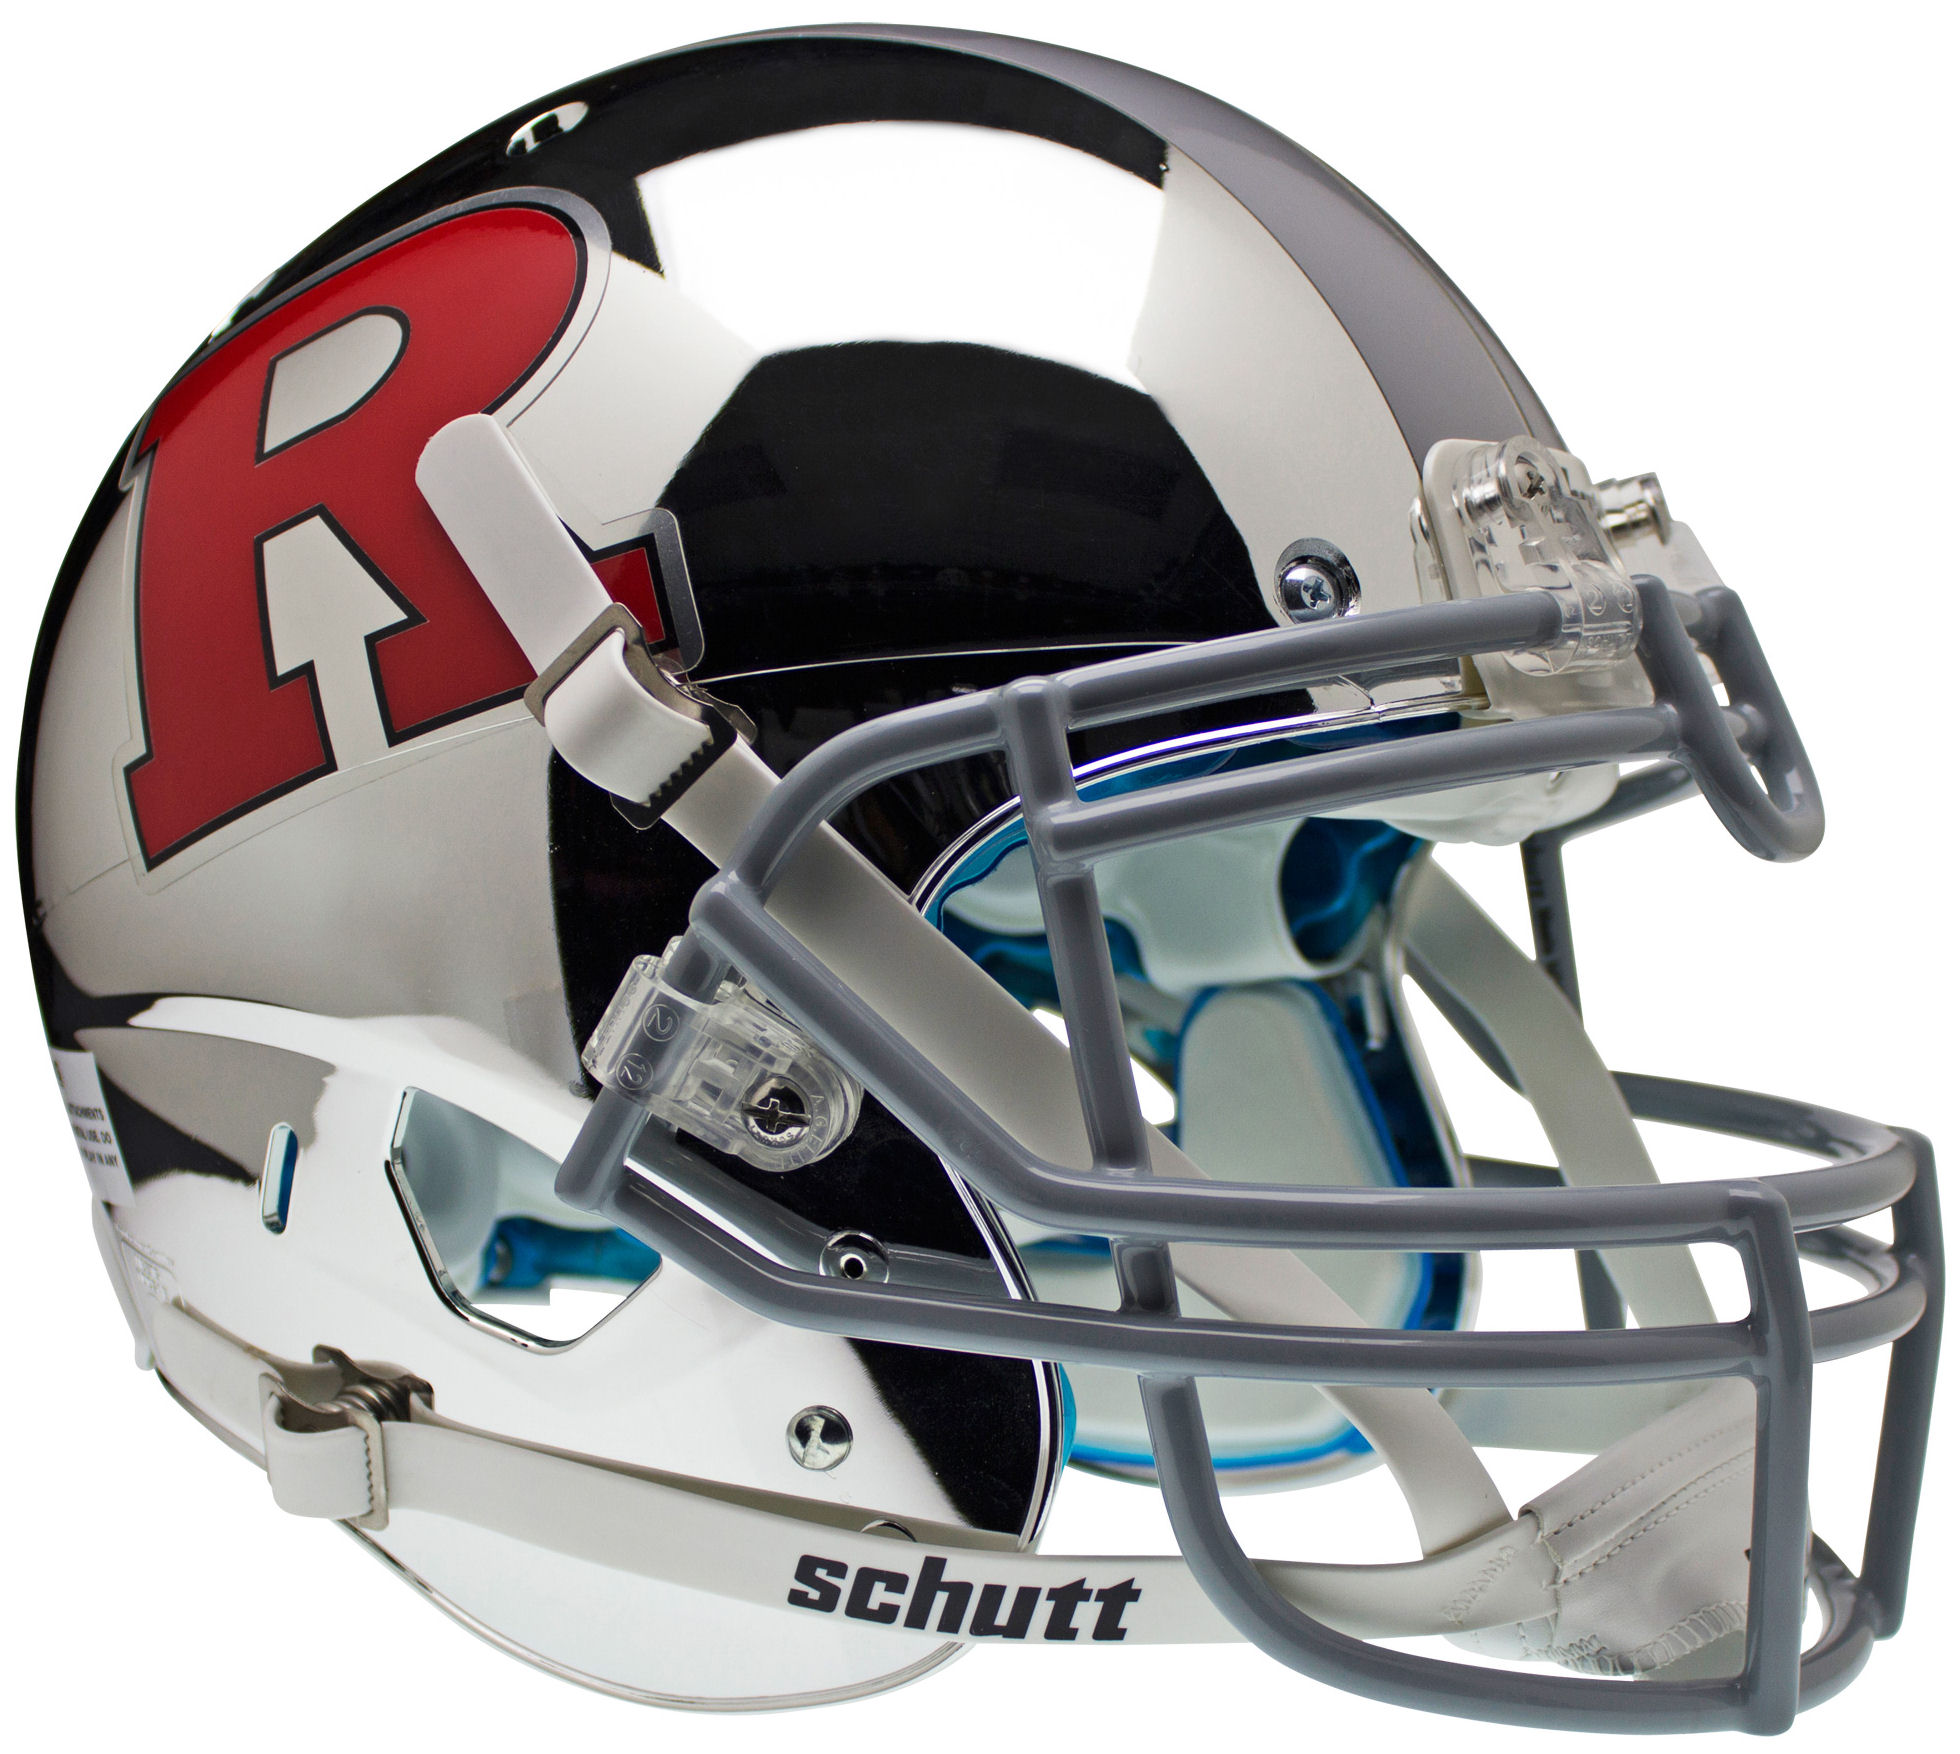 Rutgers Scarlet Knights Authentic College XP Football Helmet Schutt <B>Chrome Red R and Silver Stripe</B>